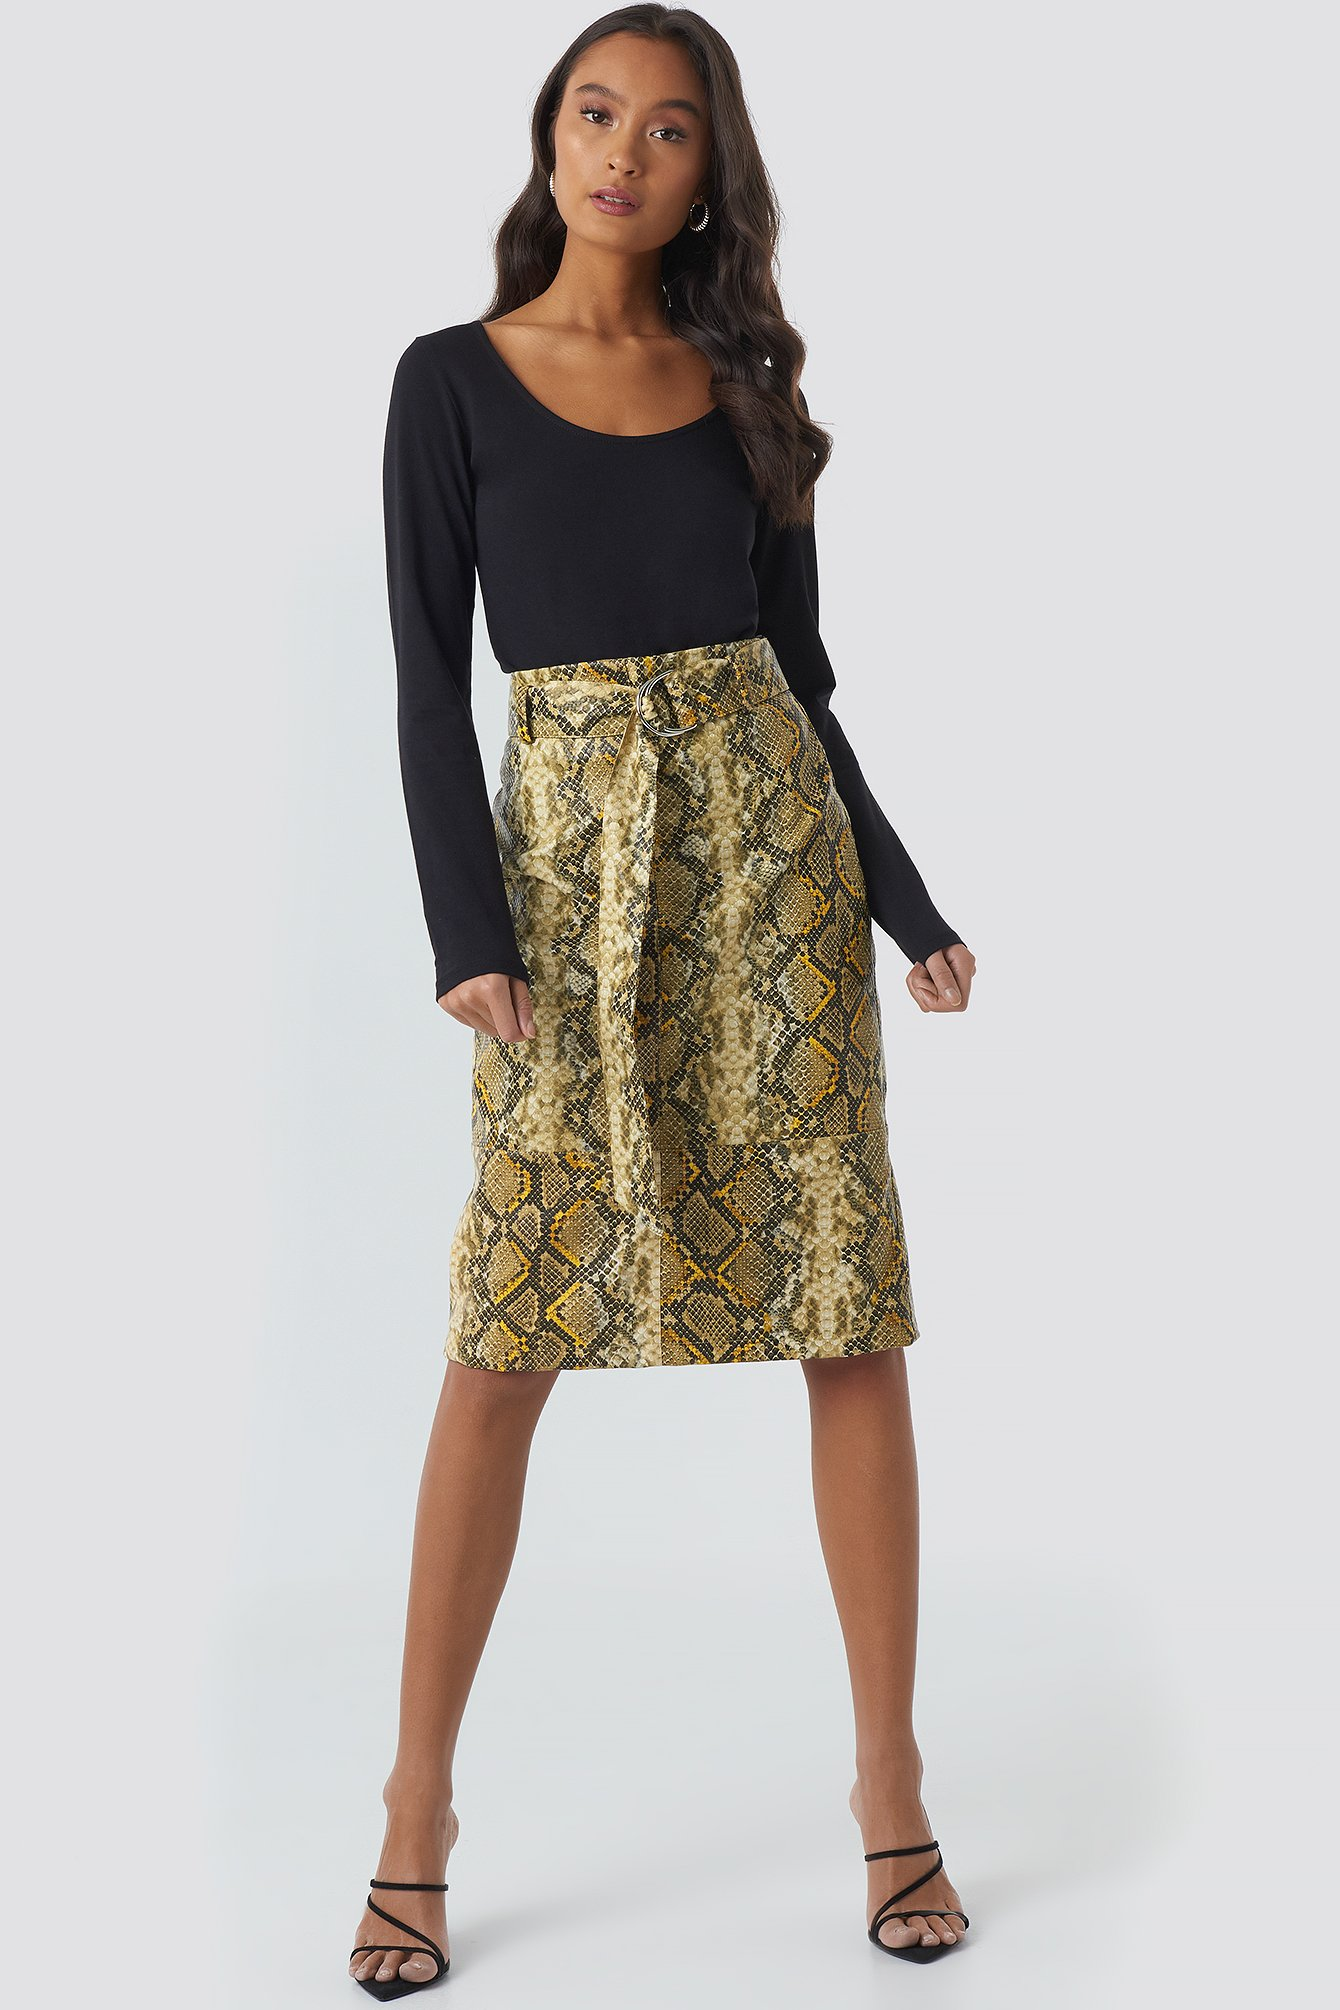 NA-KD Trend Snake Printed Belted PU Skirt - Multicolor